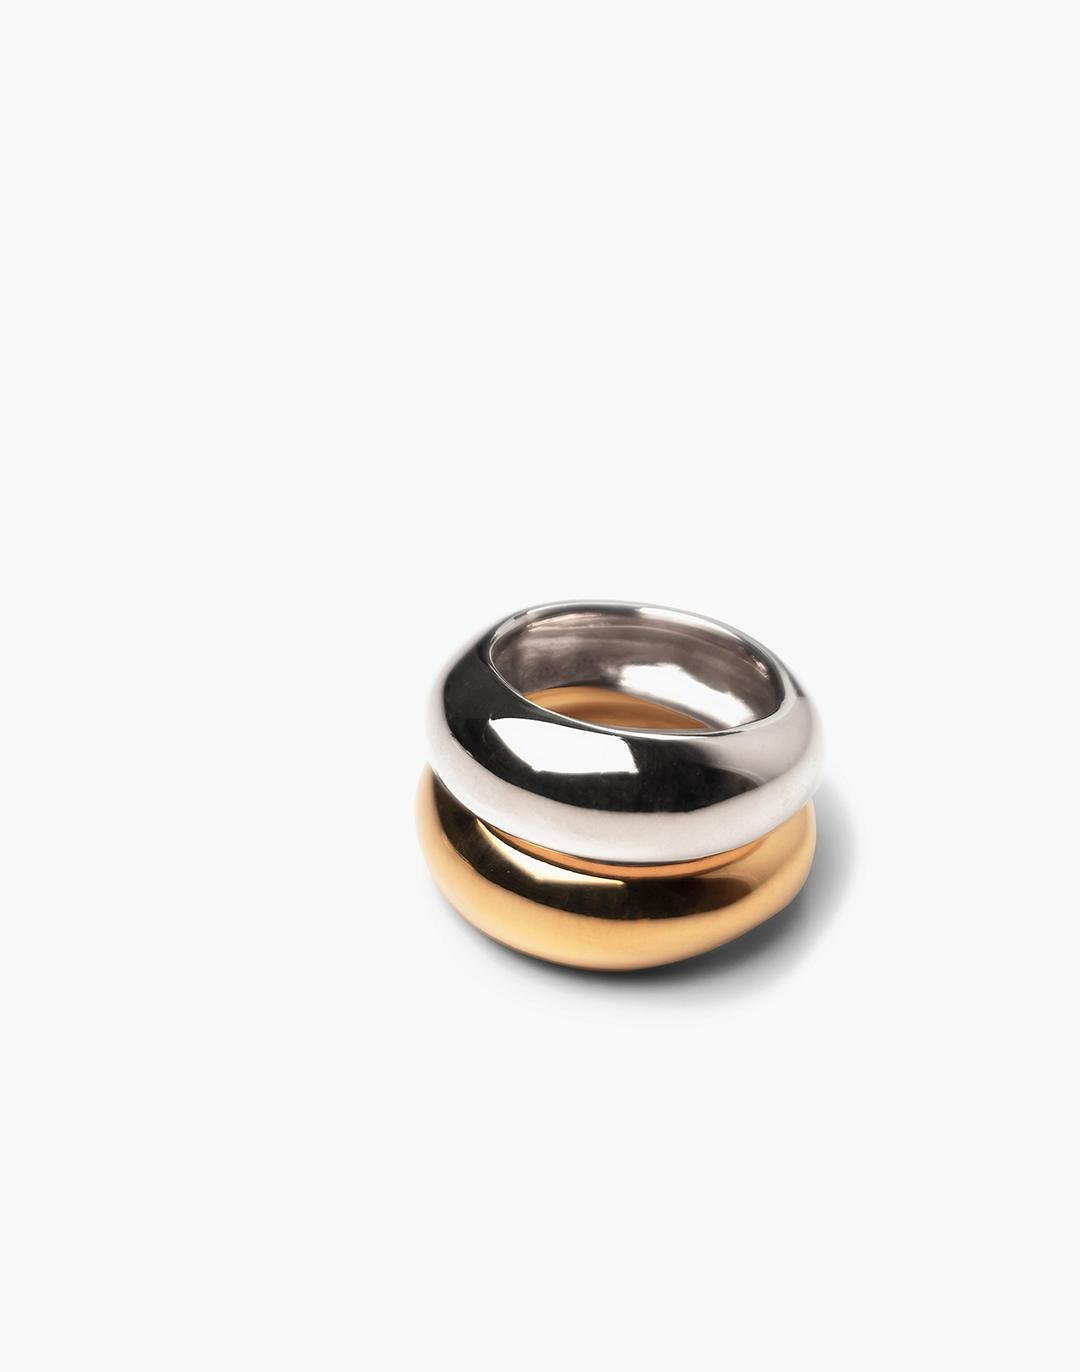 CHARLOTTE CAUWE STUDIO Bubble Ring Set in Gold & Sterling Silver